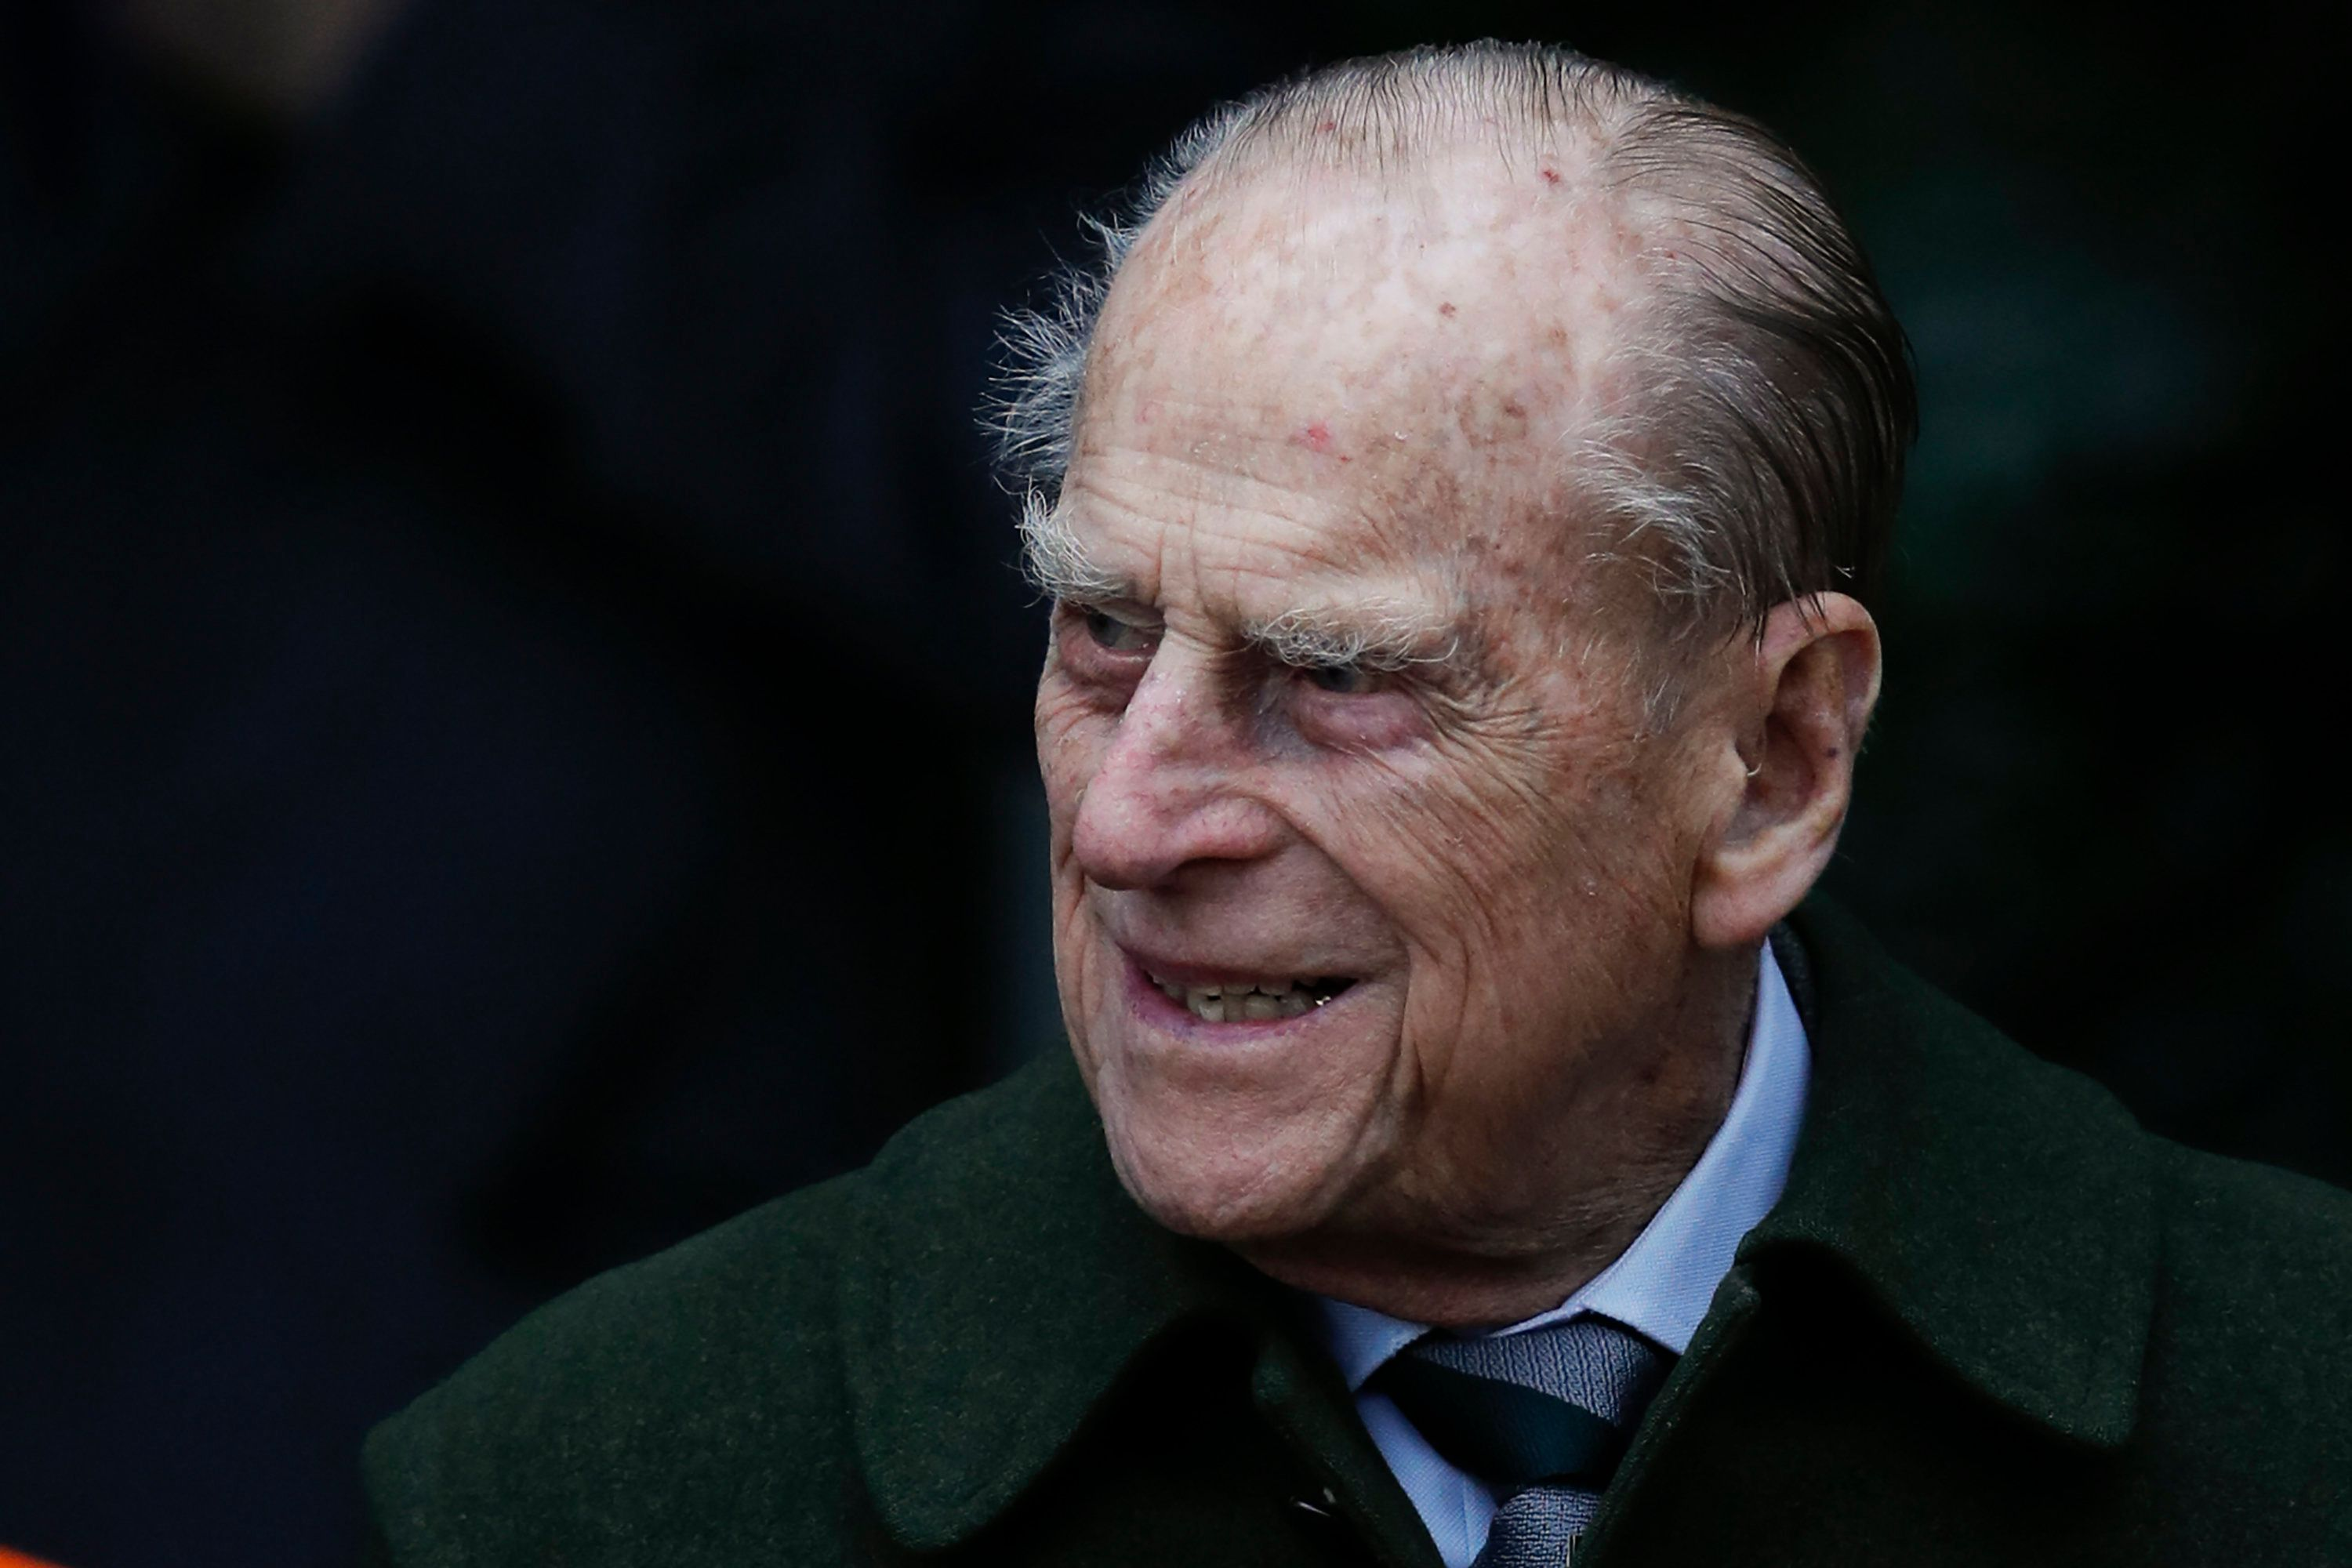 Prince Philip Admitted To Hospital For Planned Hip